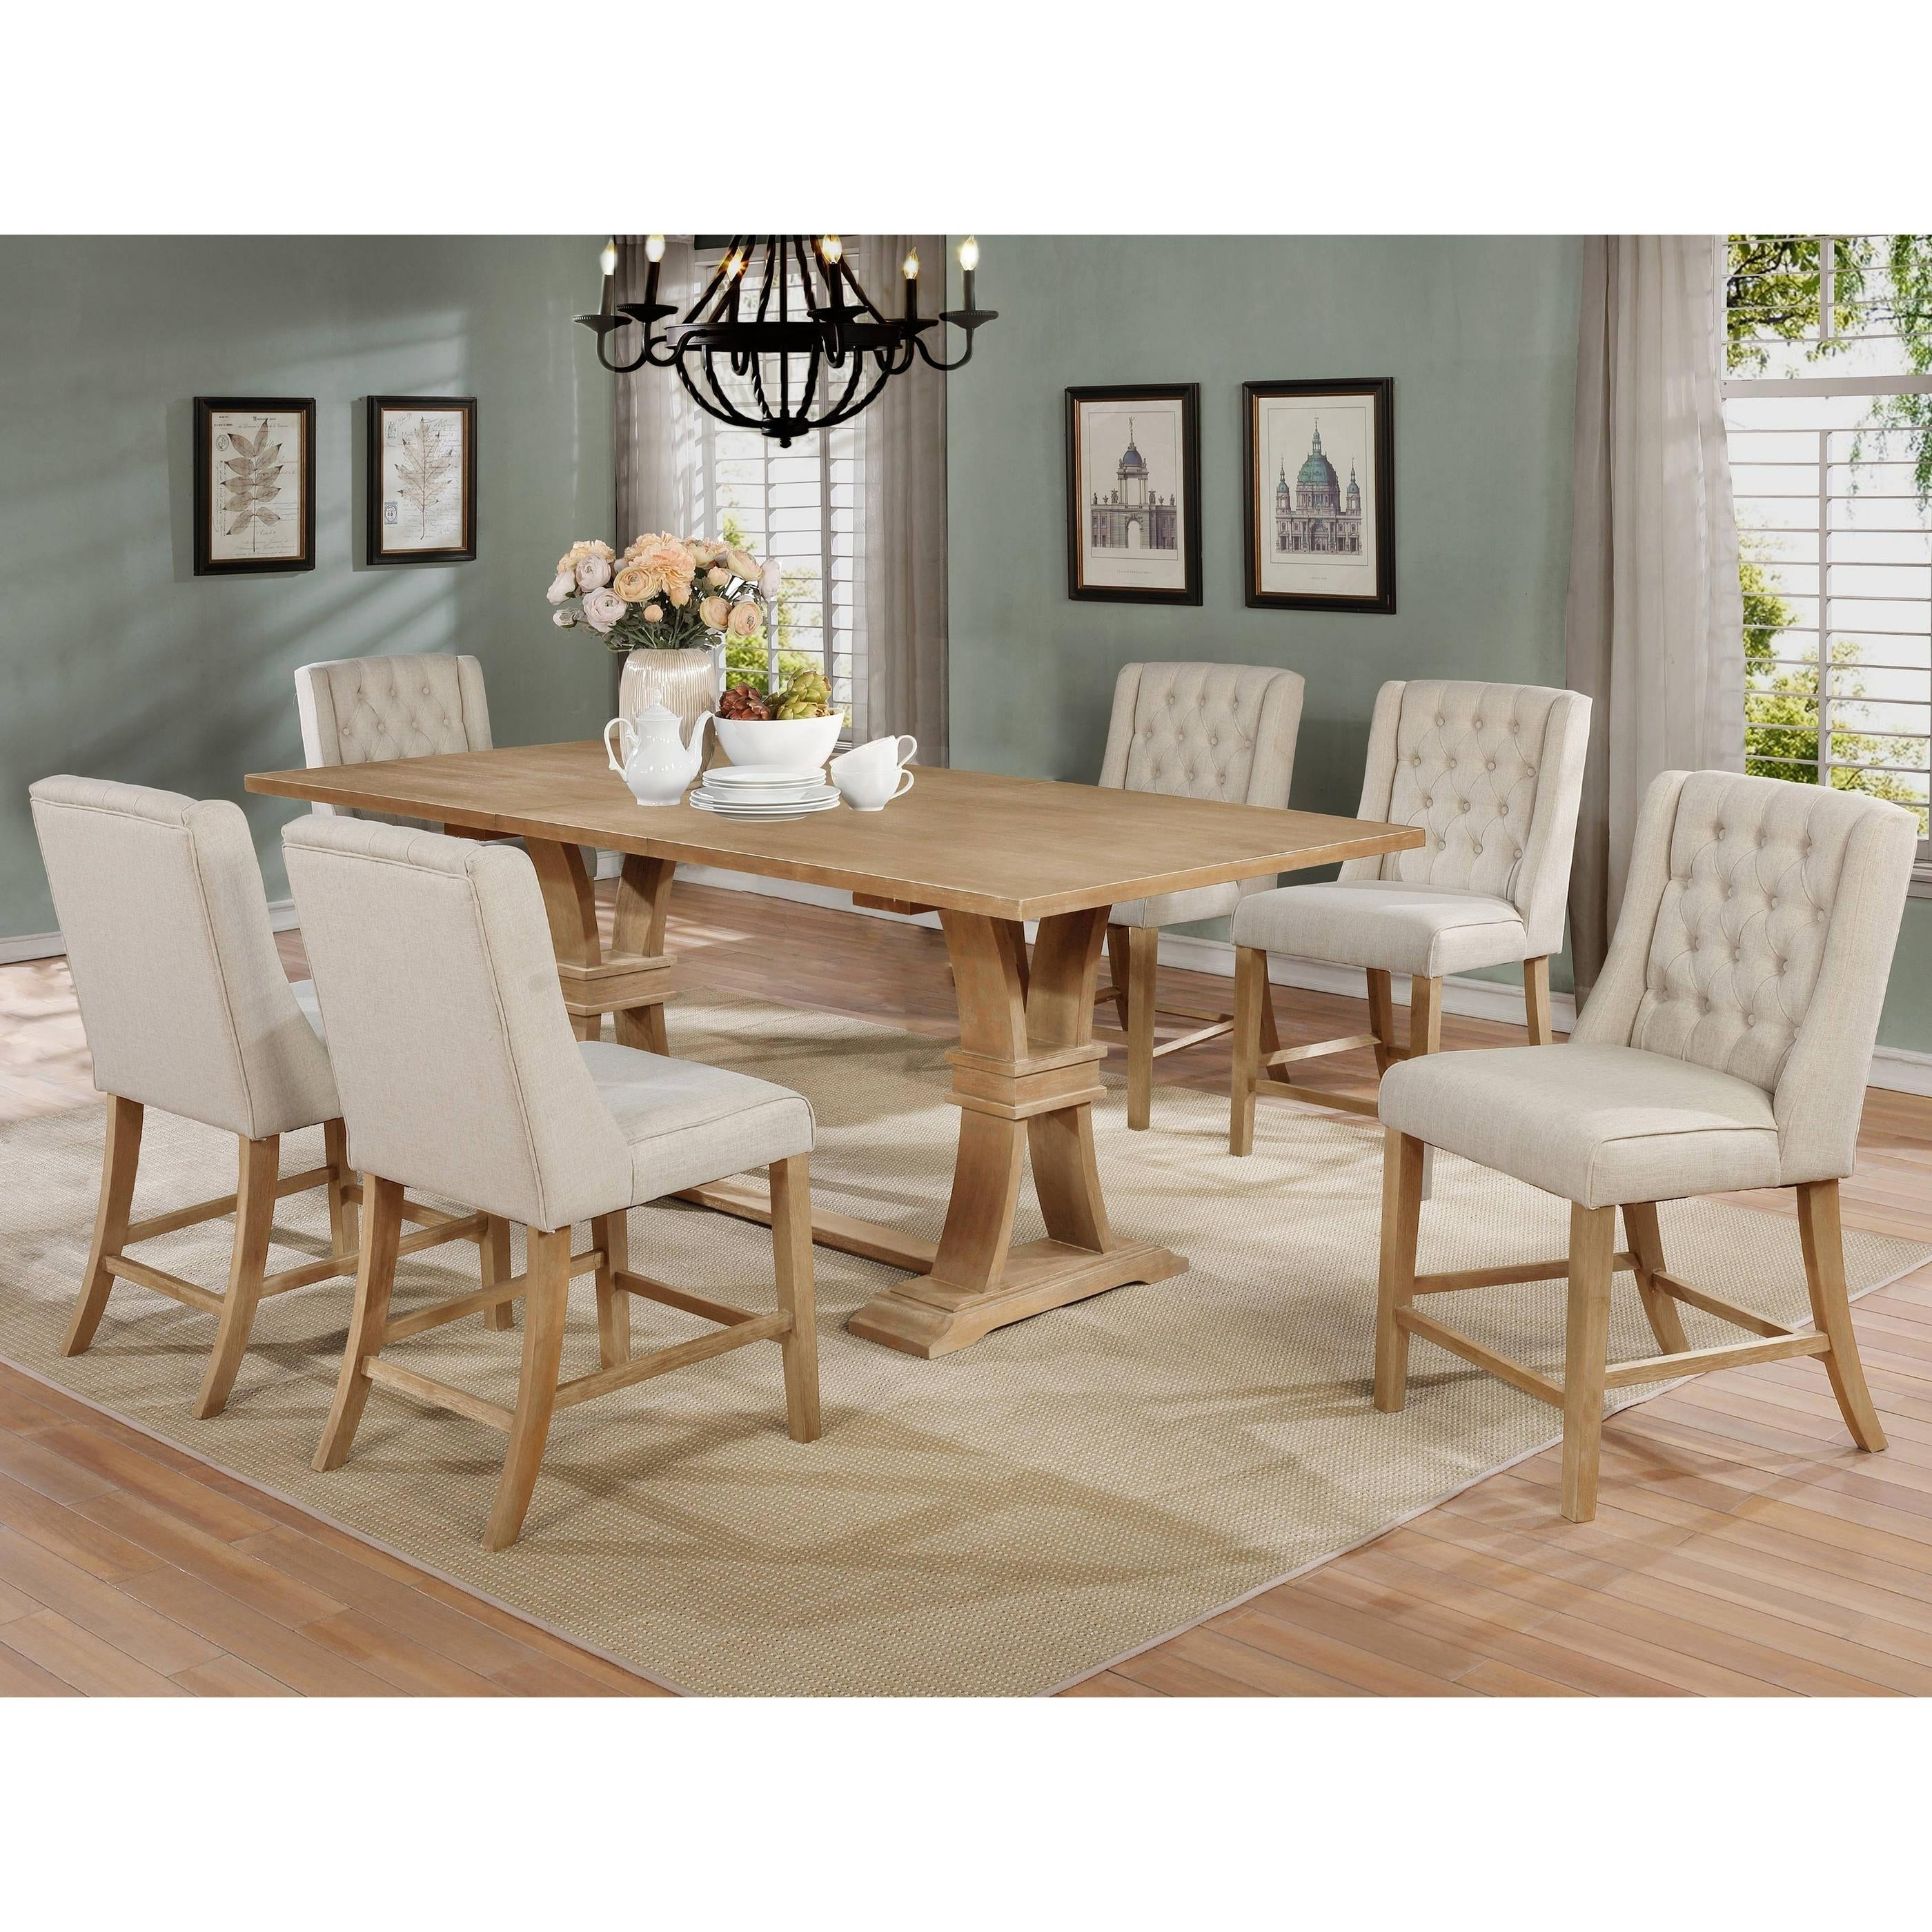 Best Quality Furniture 7 Piece Counter Height Dining Set W 6 Counter Height Chairs Overstock 30742519